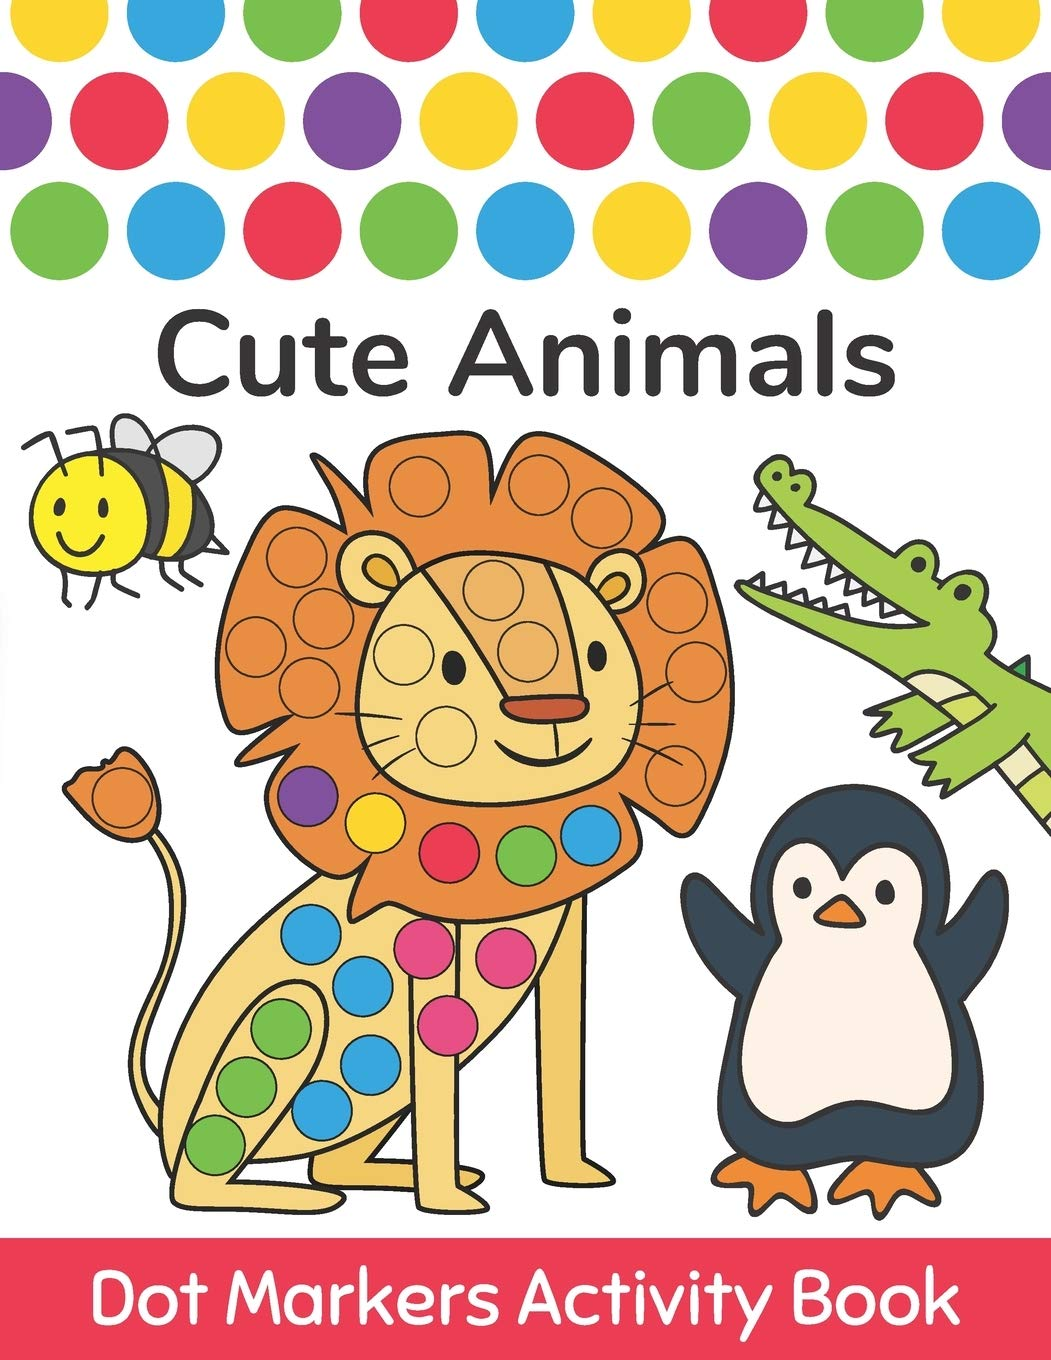 Dot Markers Activity Book : Cute Animals: Easy Guided BIG DOTS | Do a dot page a day | Gift For Kids Ages 1-3, 2-4, 3-5, Baby, Toddler, Preschool, … Art Paint Daubers Kids Activity Coloring Book